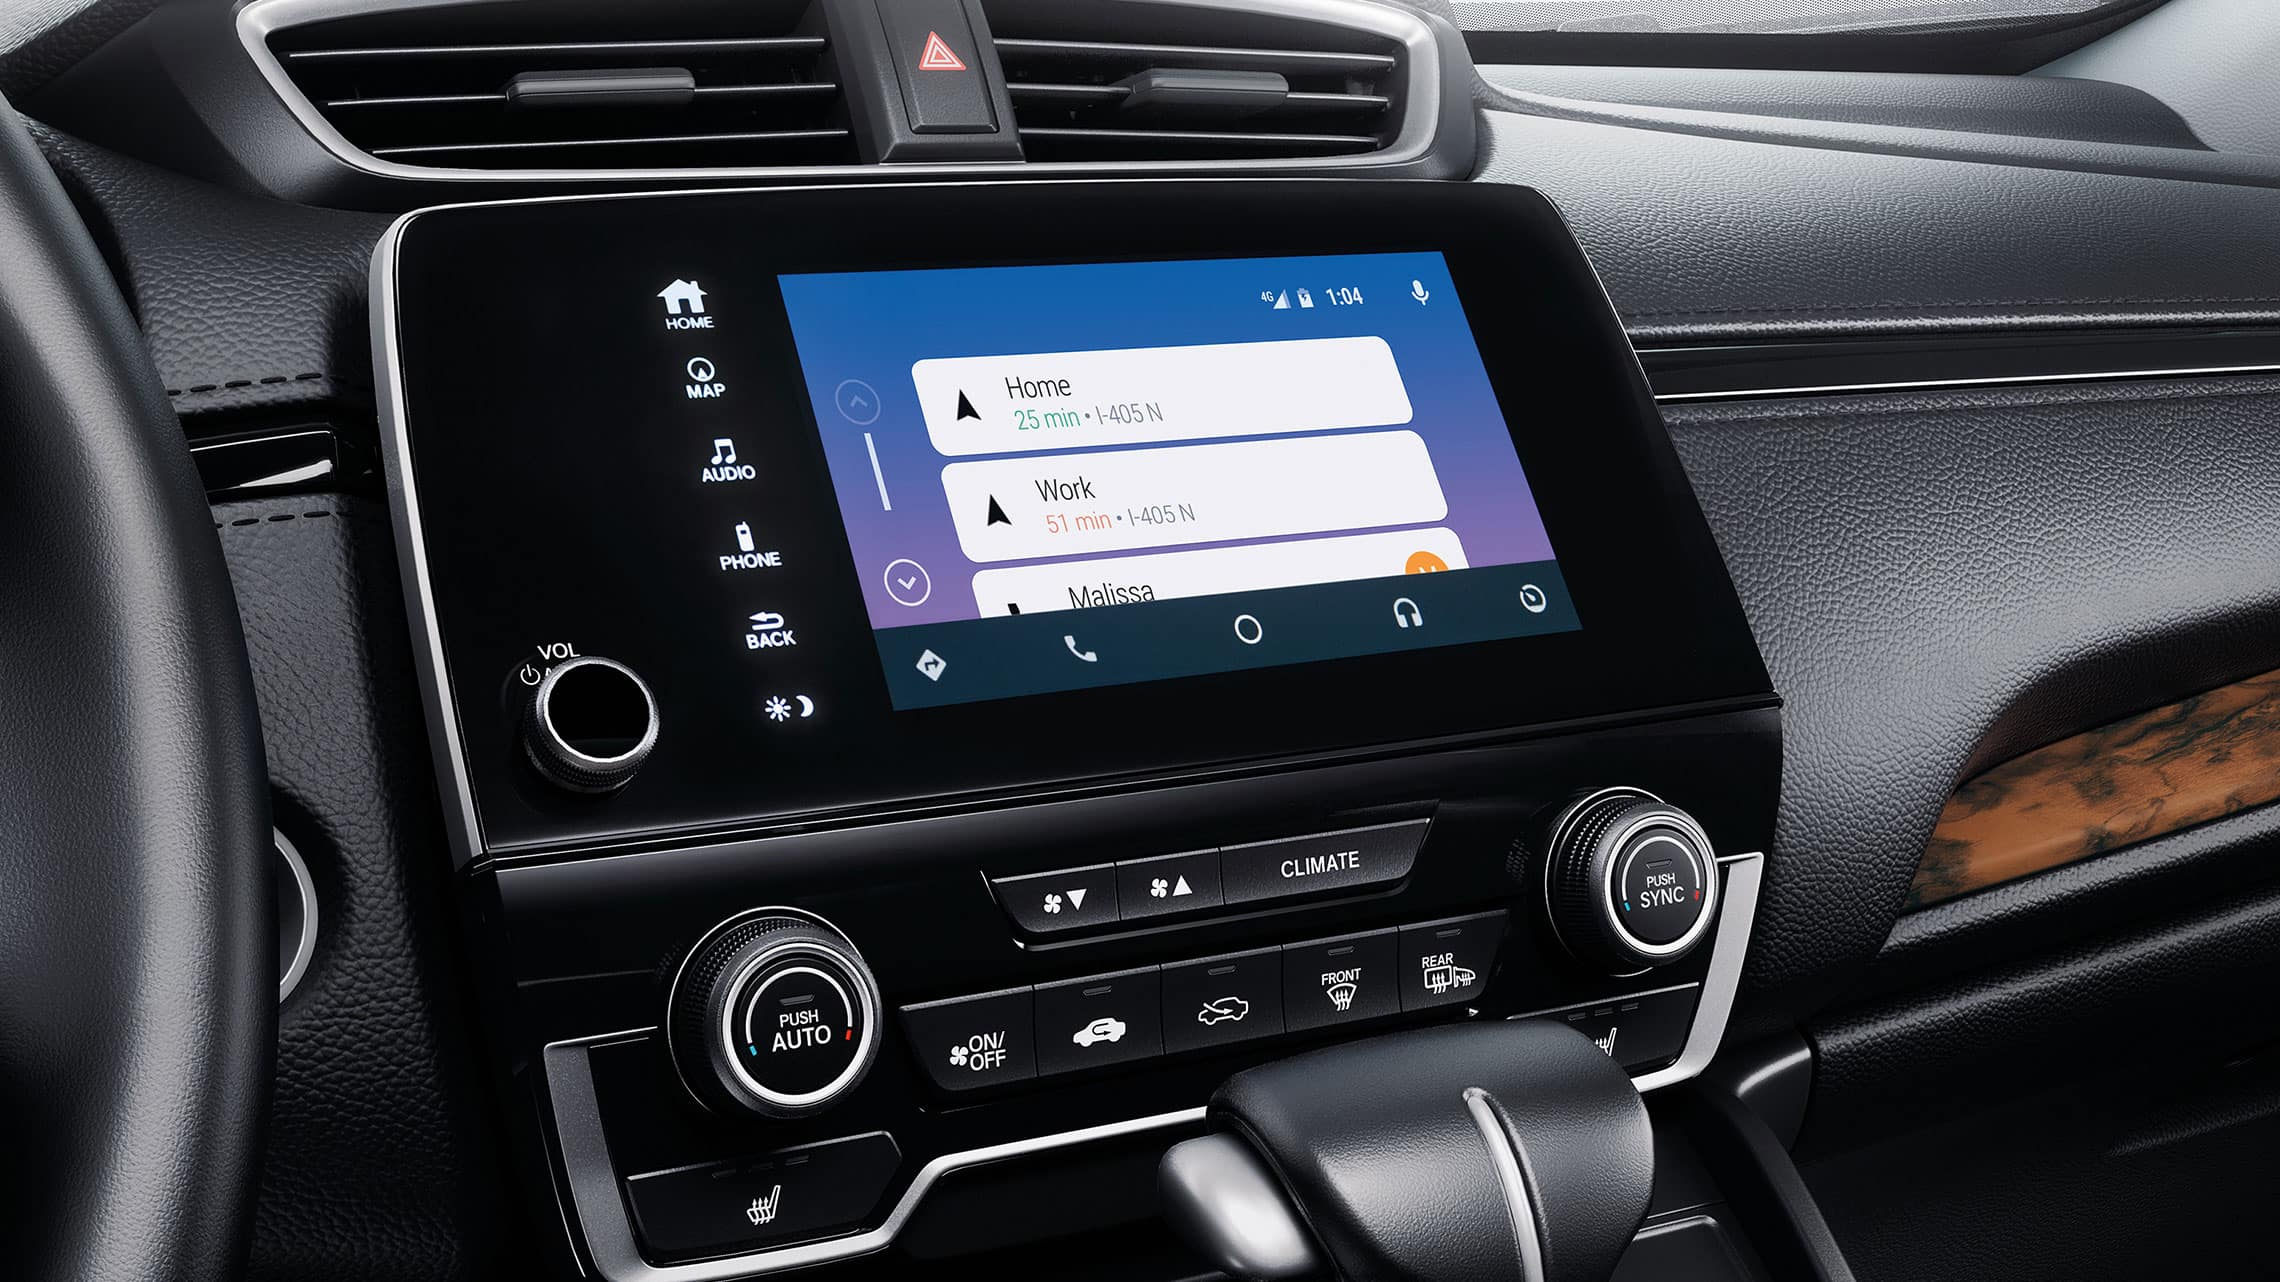 Android Auto™ integration menu detail on the Display Audio touch-screen in the 2021 Honda CR-V.